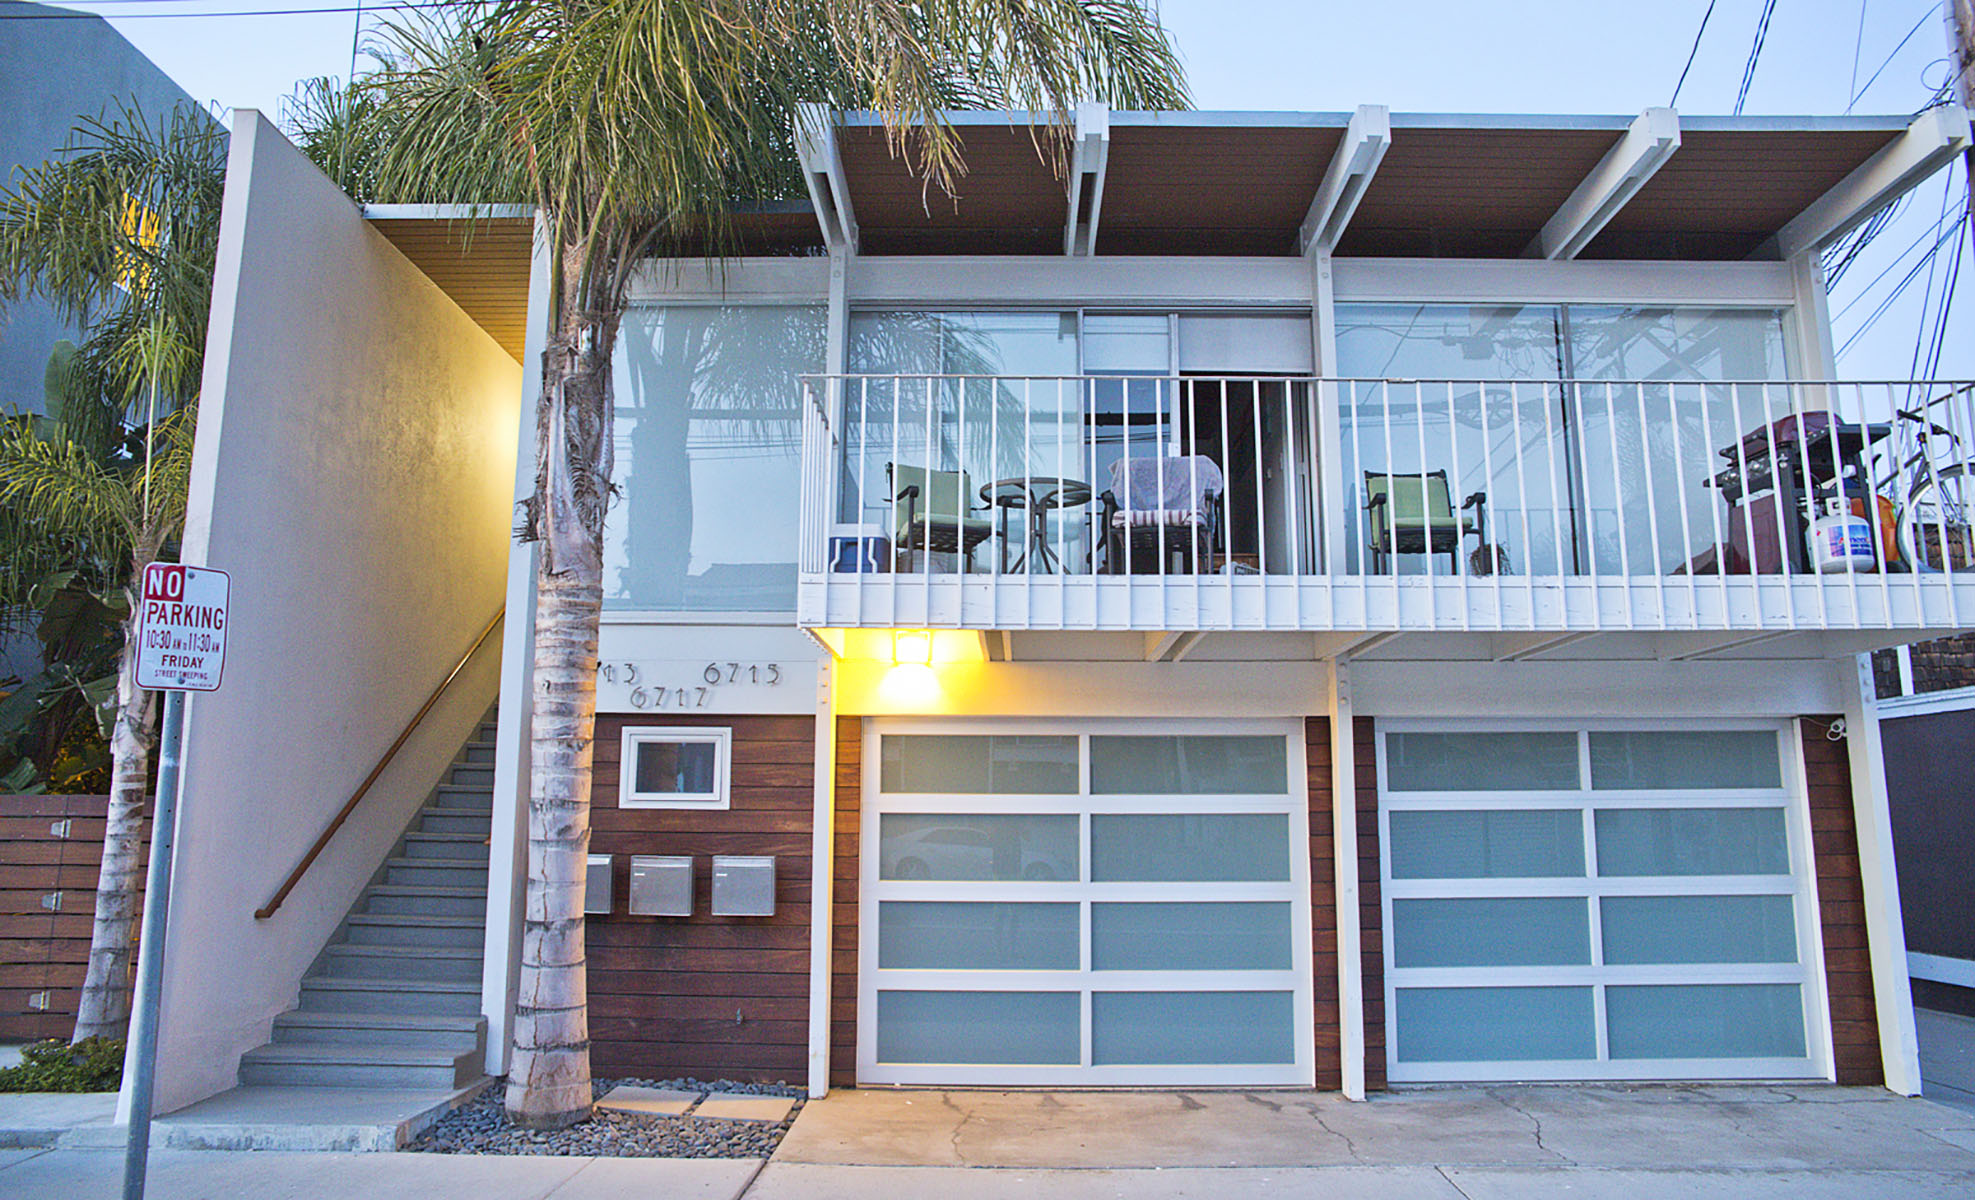 Multi-Family Home for Sale at 6713 East Ocean Blvd Long Beach, 90803 United States